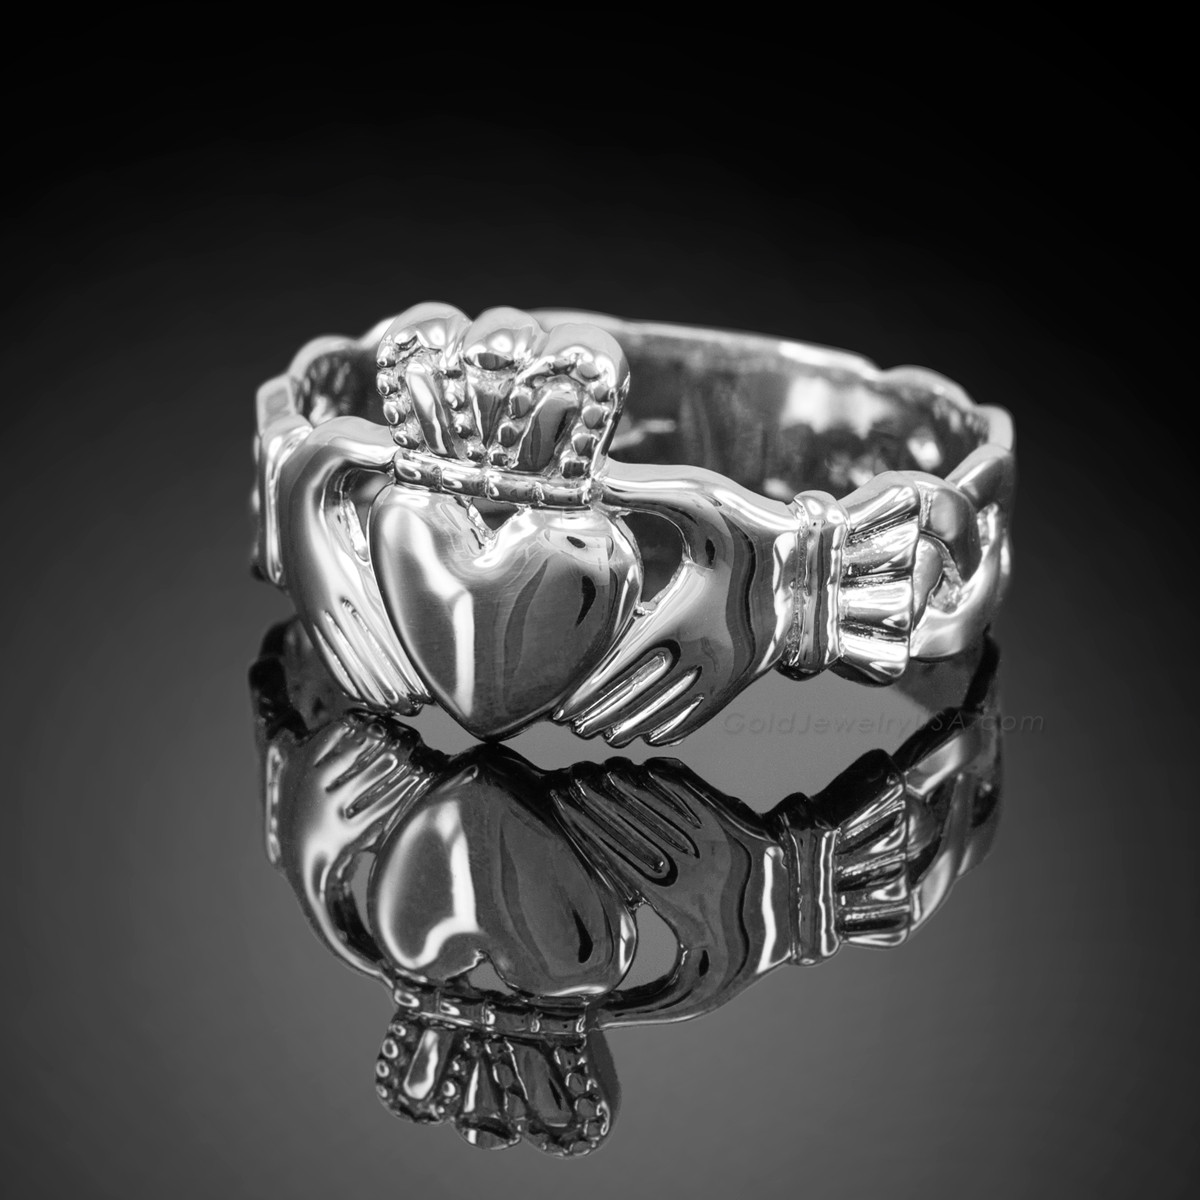 white gold men 39 s claddagh ring with trinity band usa ebay. Black Bedroom Furniture Sets. Home Design Ideas